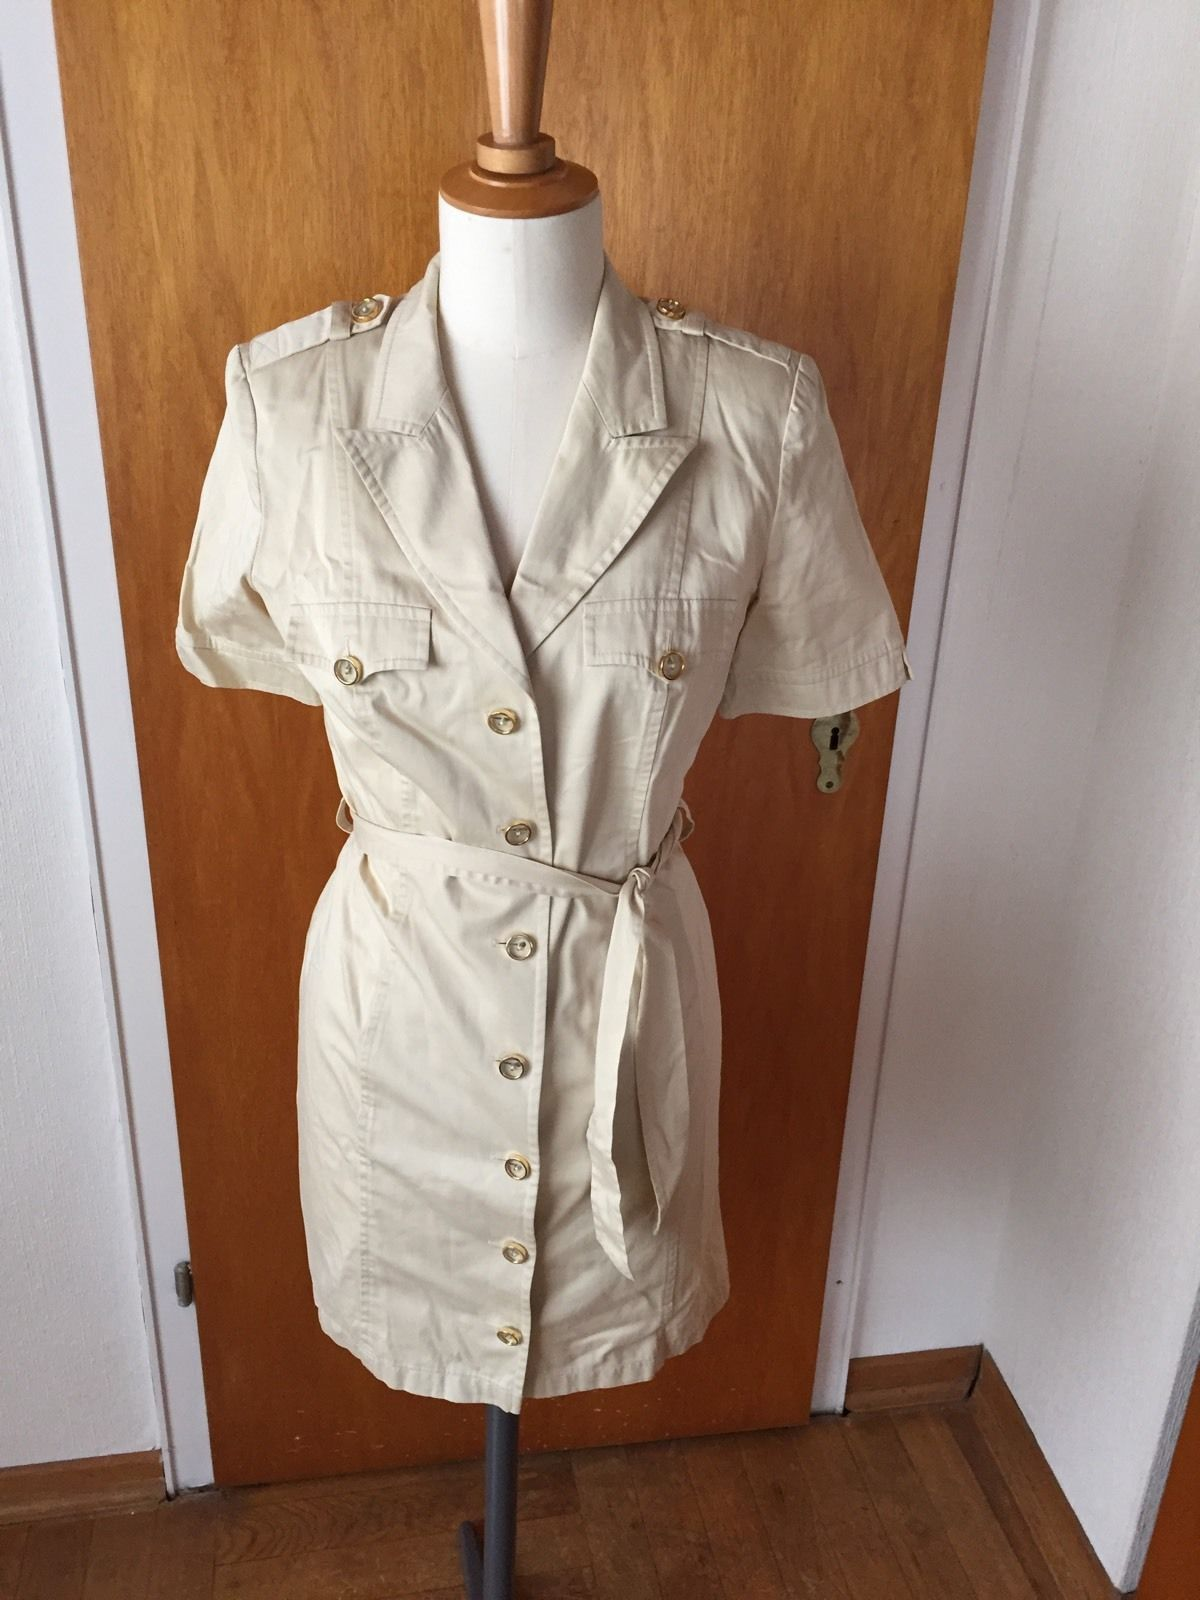 Original Escada Kleid Safari Stil 38 Beige | eBay